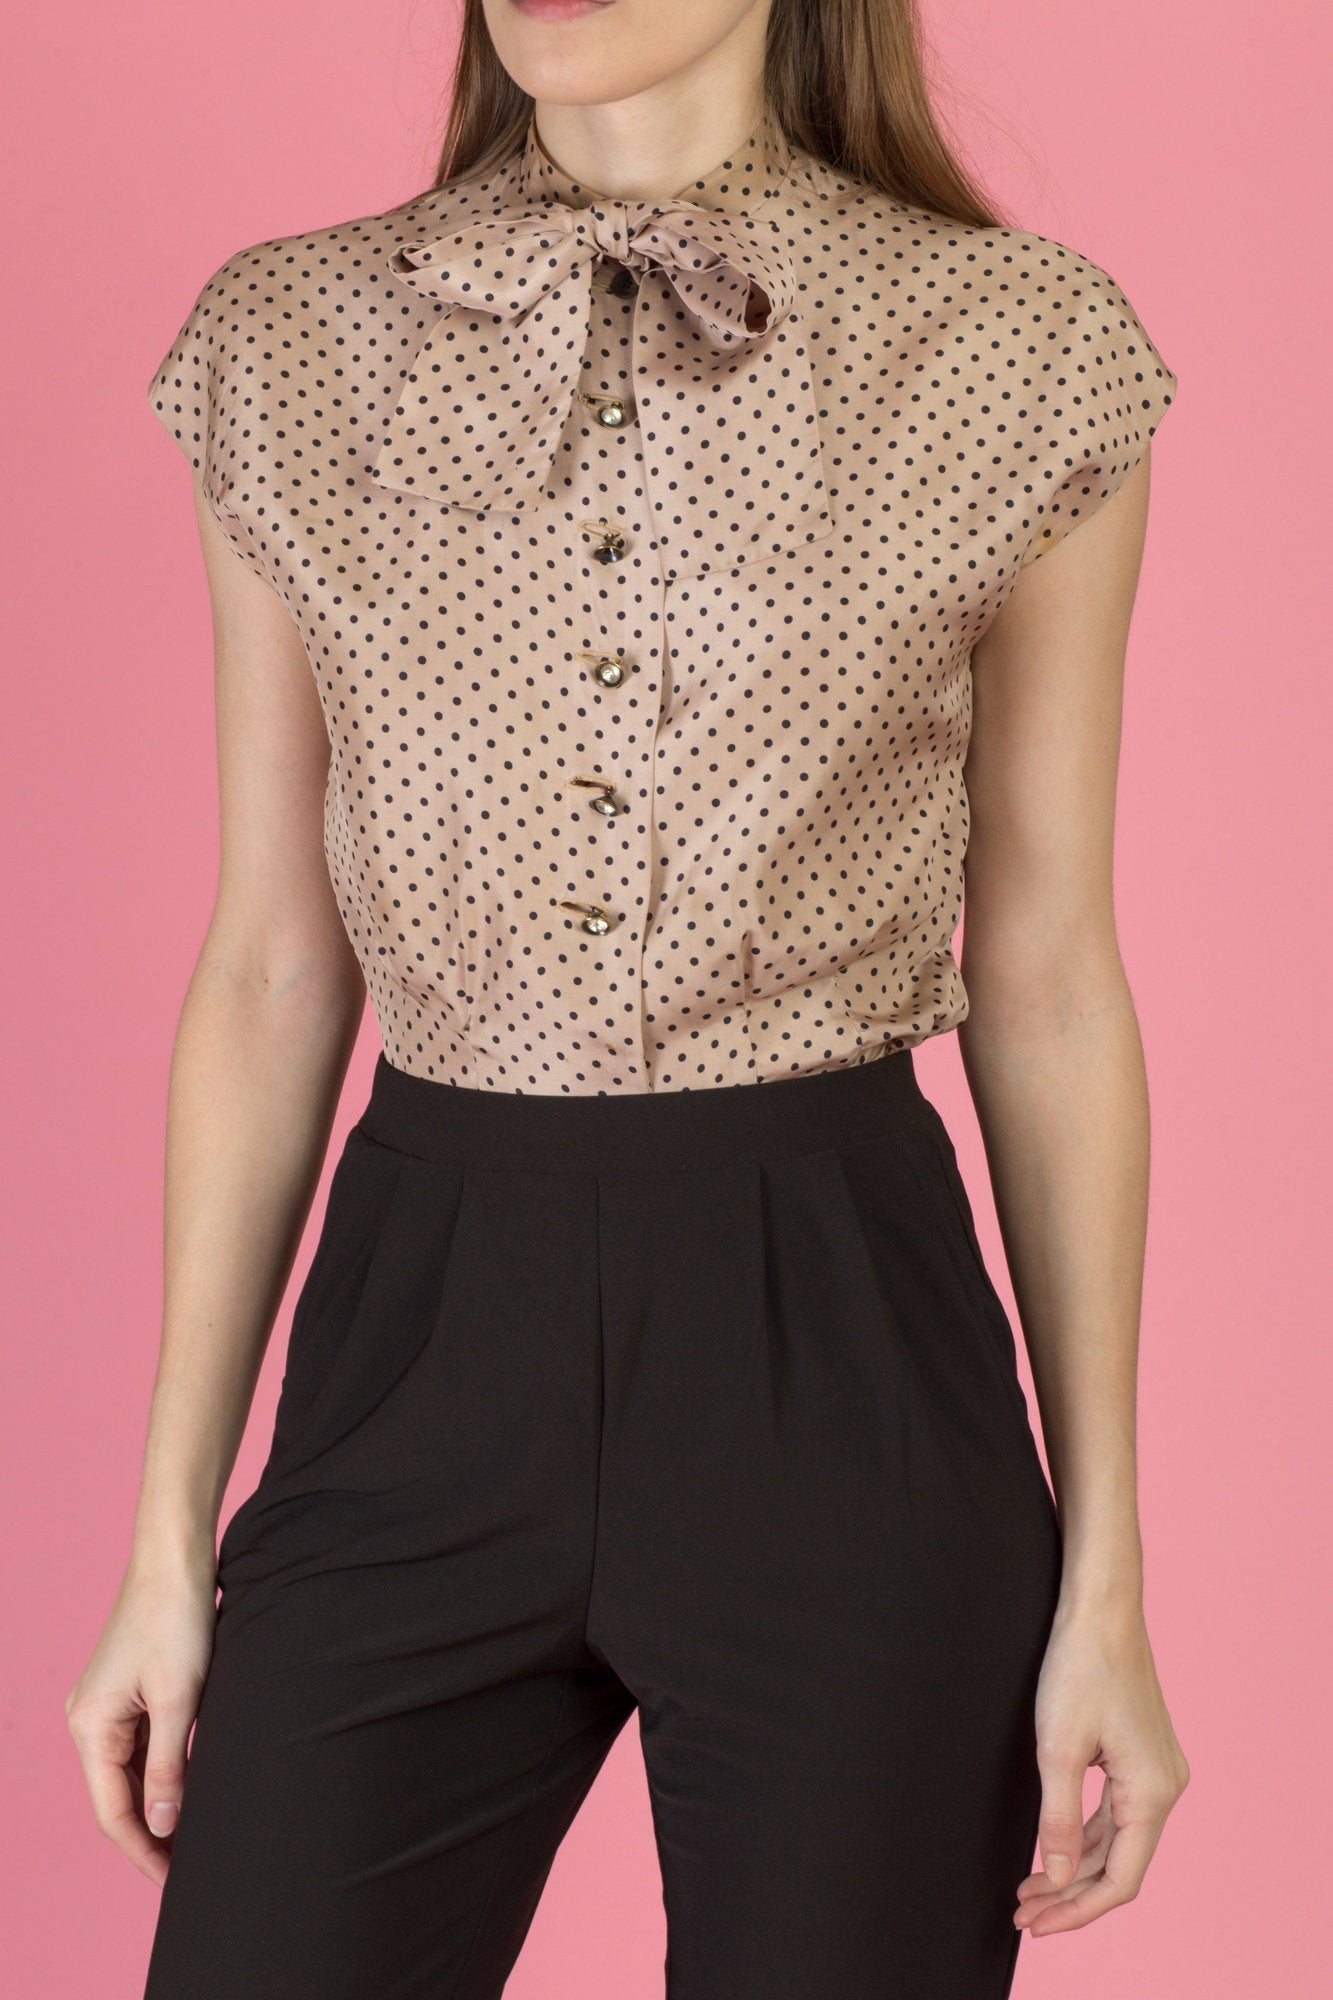 1950s Cropped Polka Dot Blouse - Small